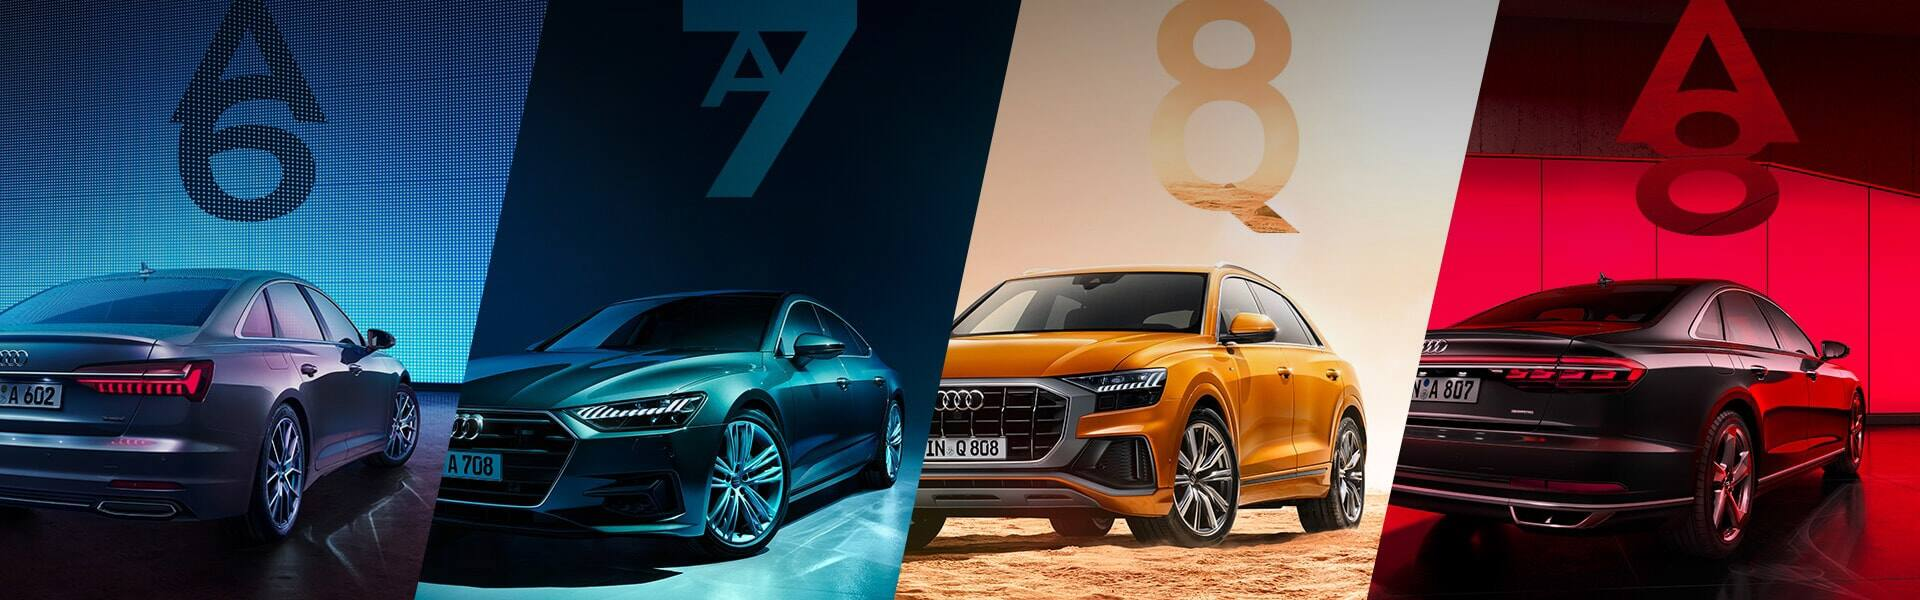 The all-new A6, A7, A8 and first ever Q8.